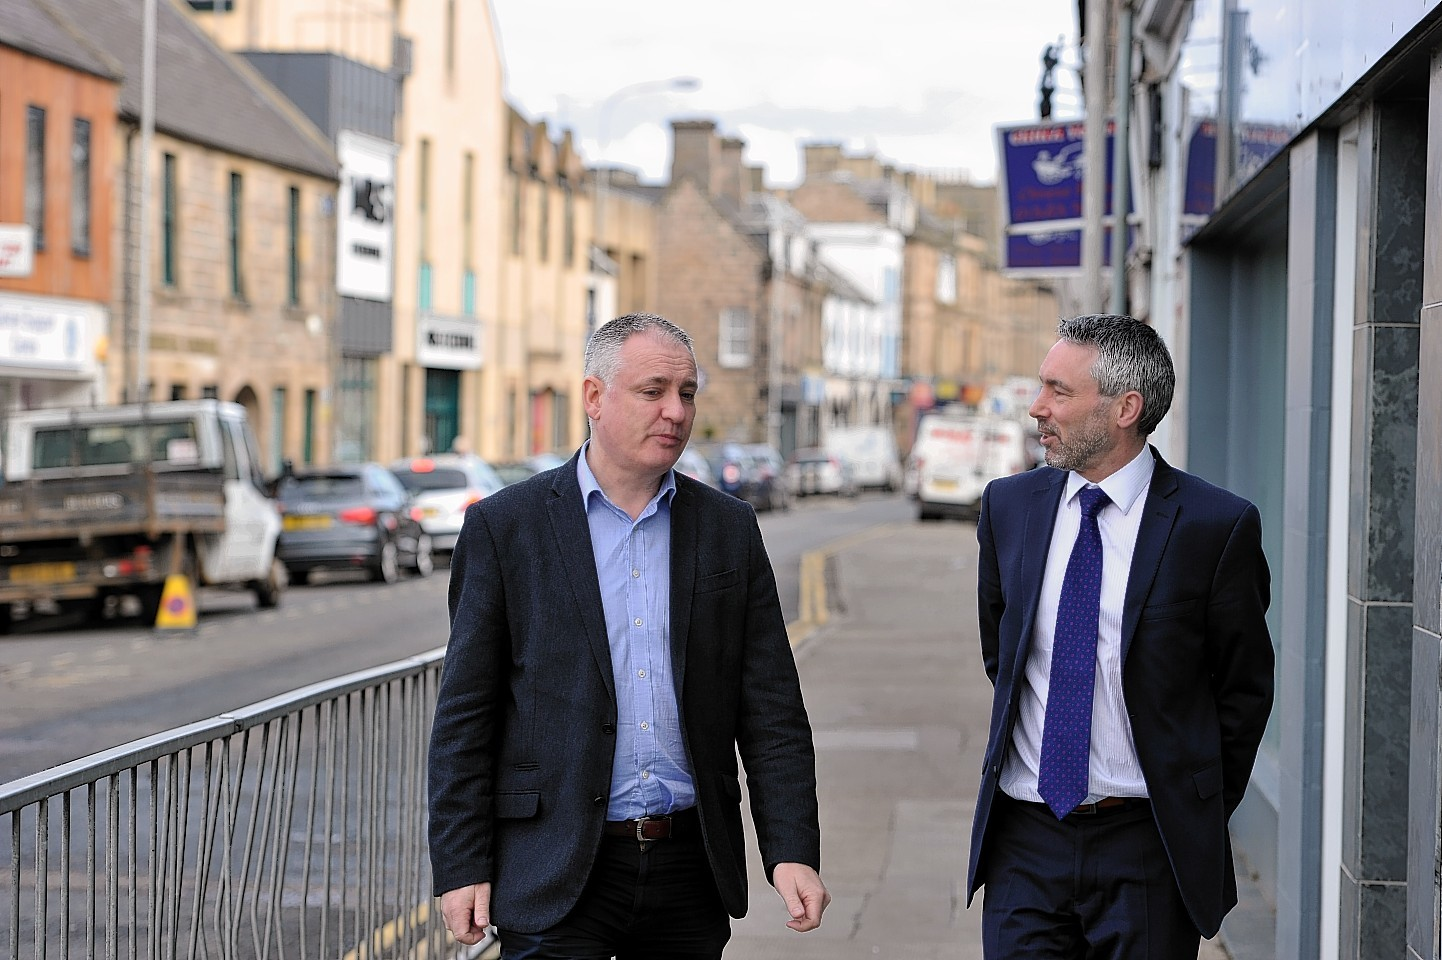 MSP Richard Lochhead, left, with independent rates assessor, Ian Milton, right, in High Street, Elgin, following a fact-finding meeting between them.